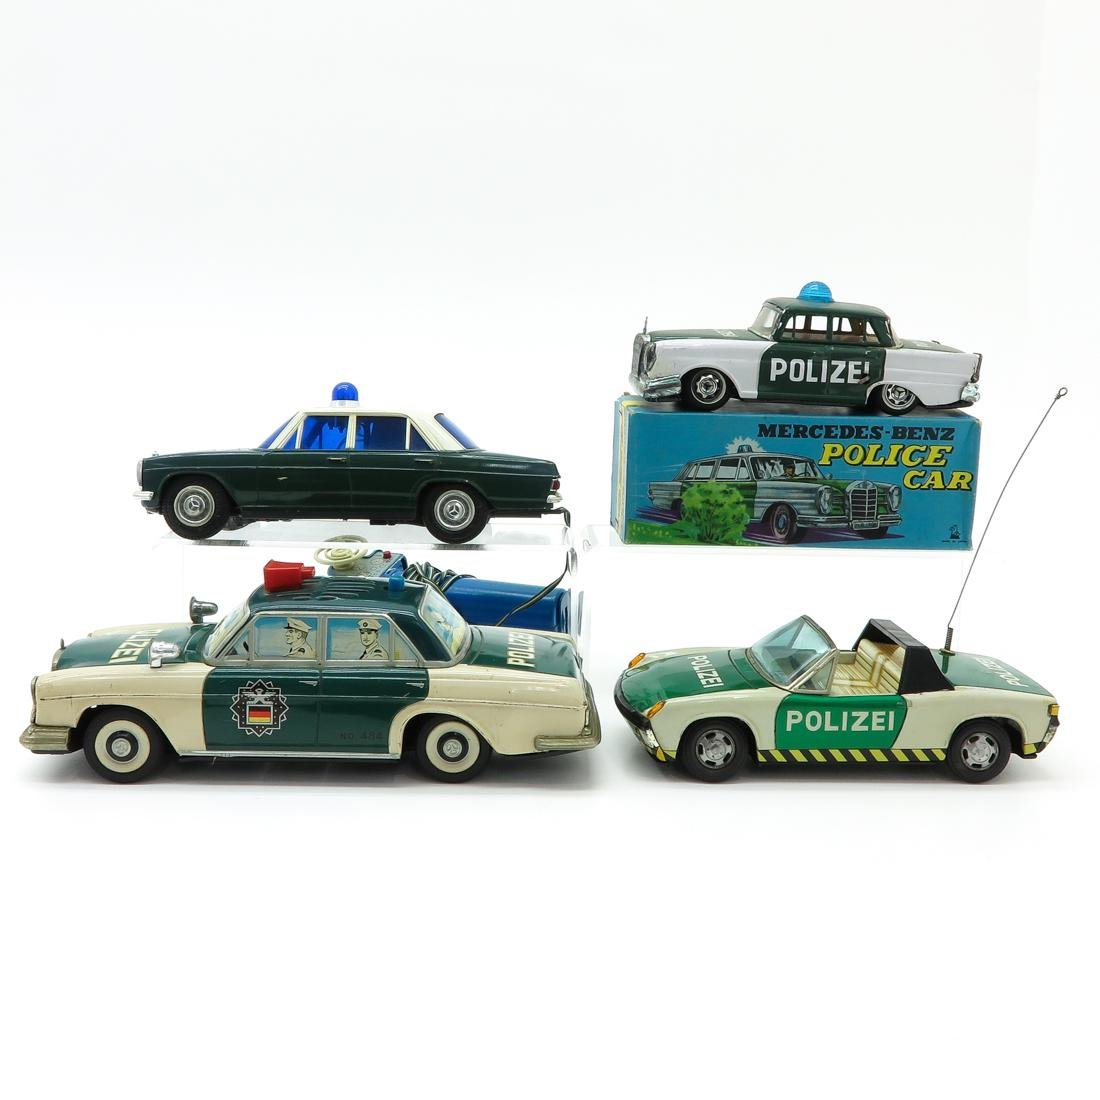 Lot of 4 Vintage Toy Police Cars